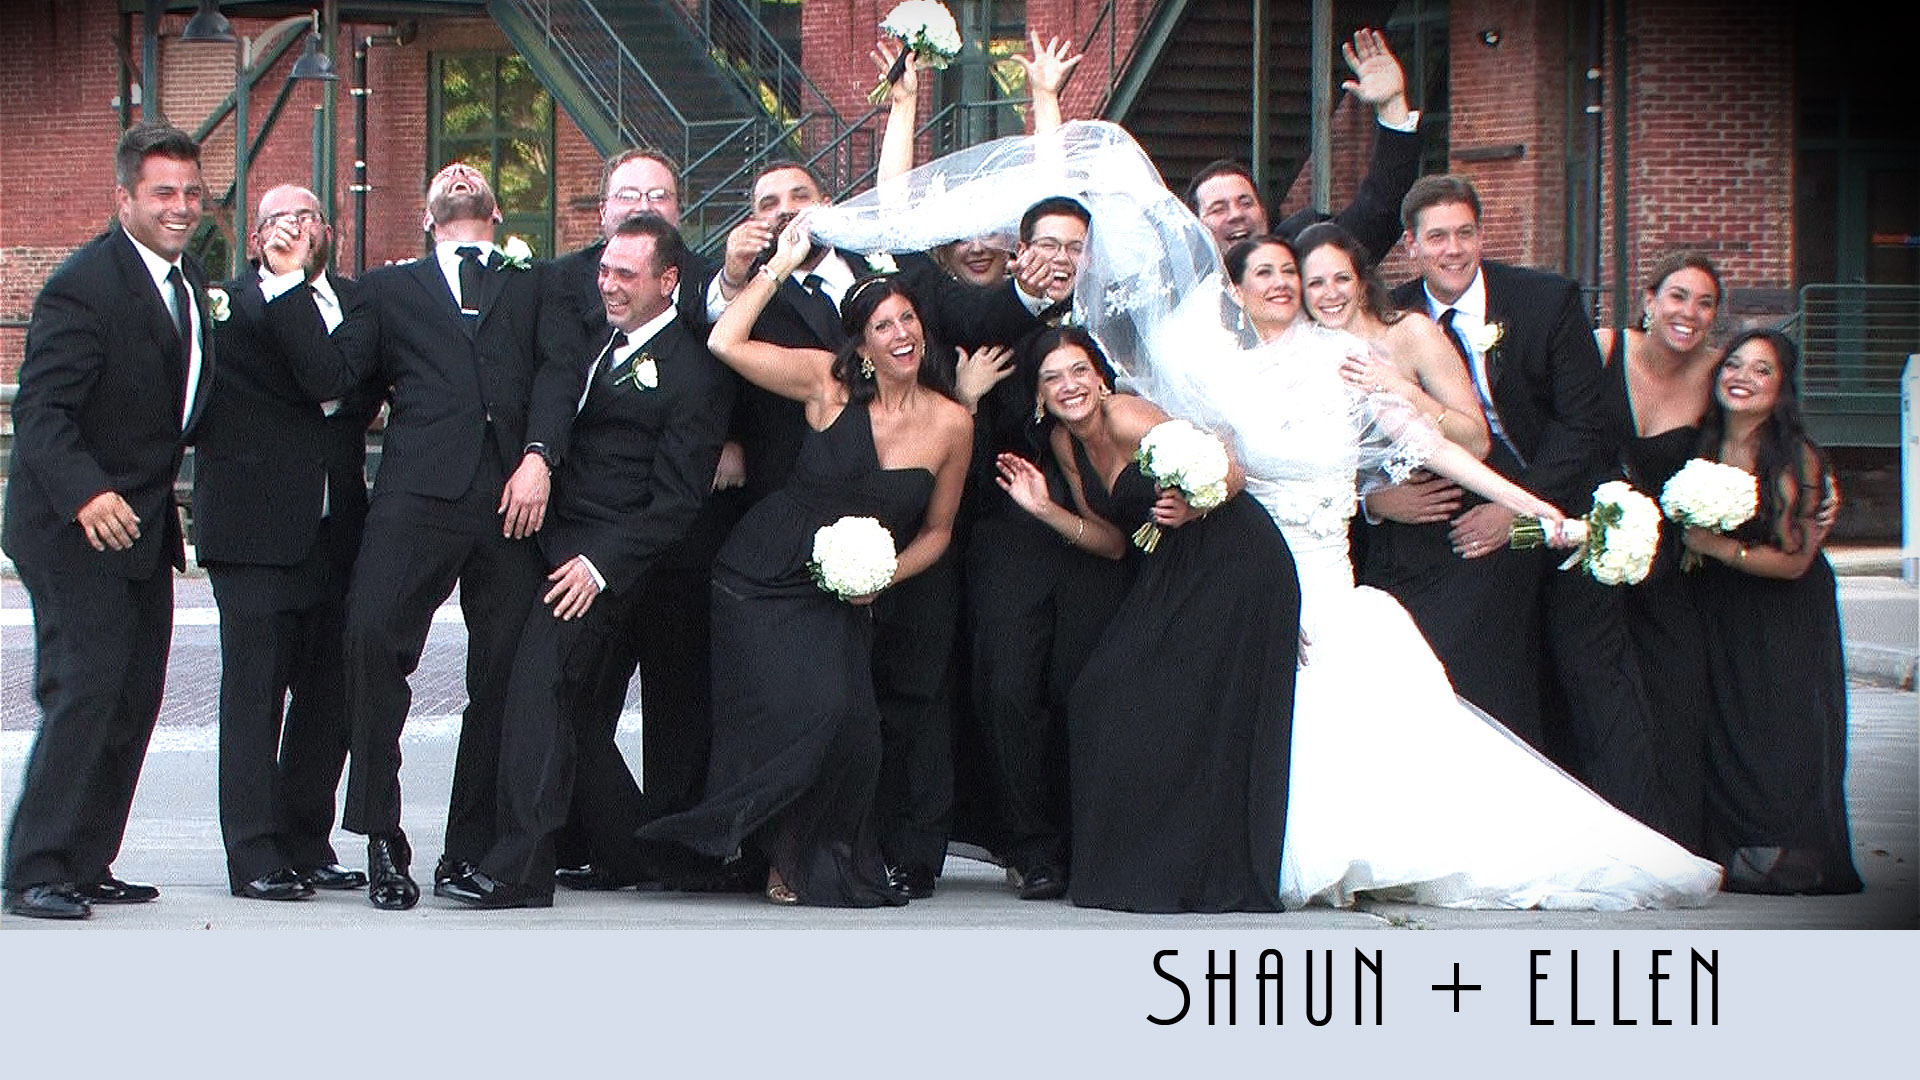 Shaun & Ellen – Rochester Wedding Video